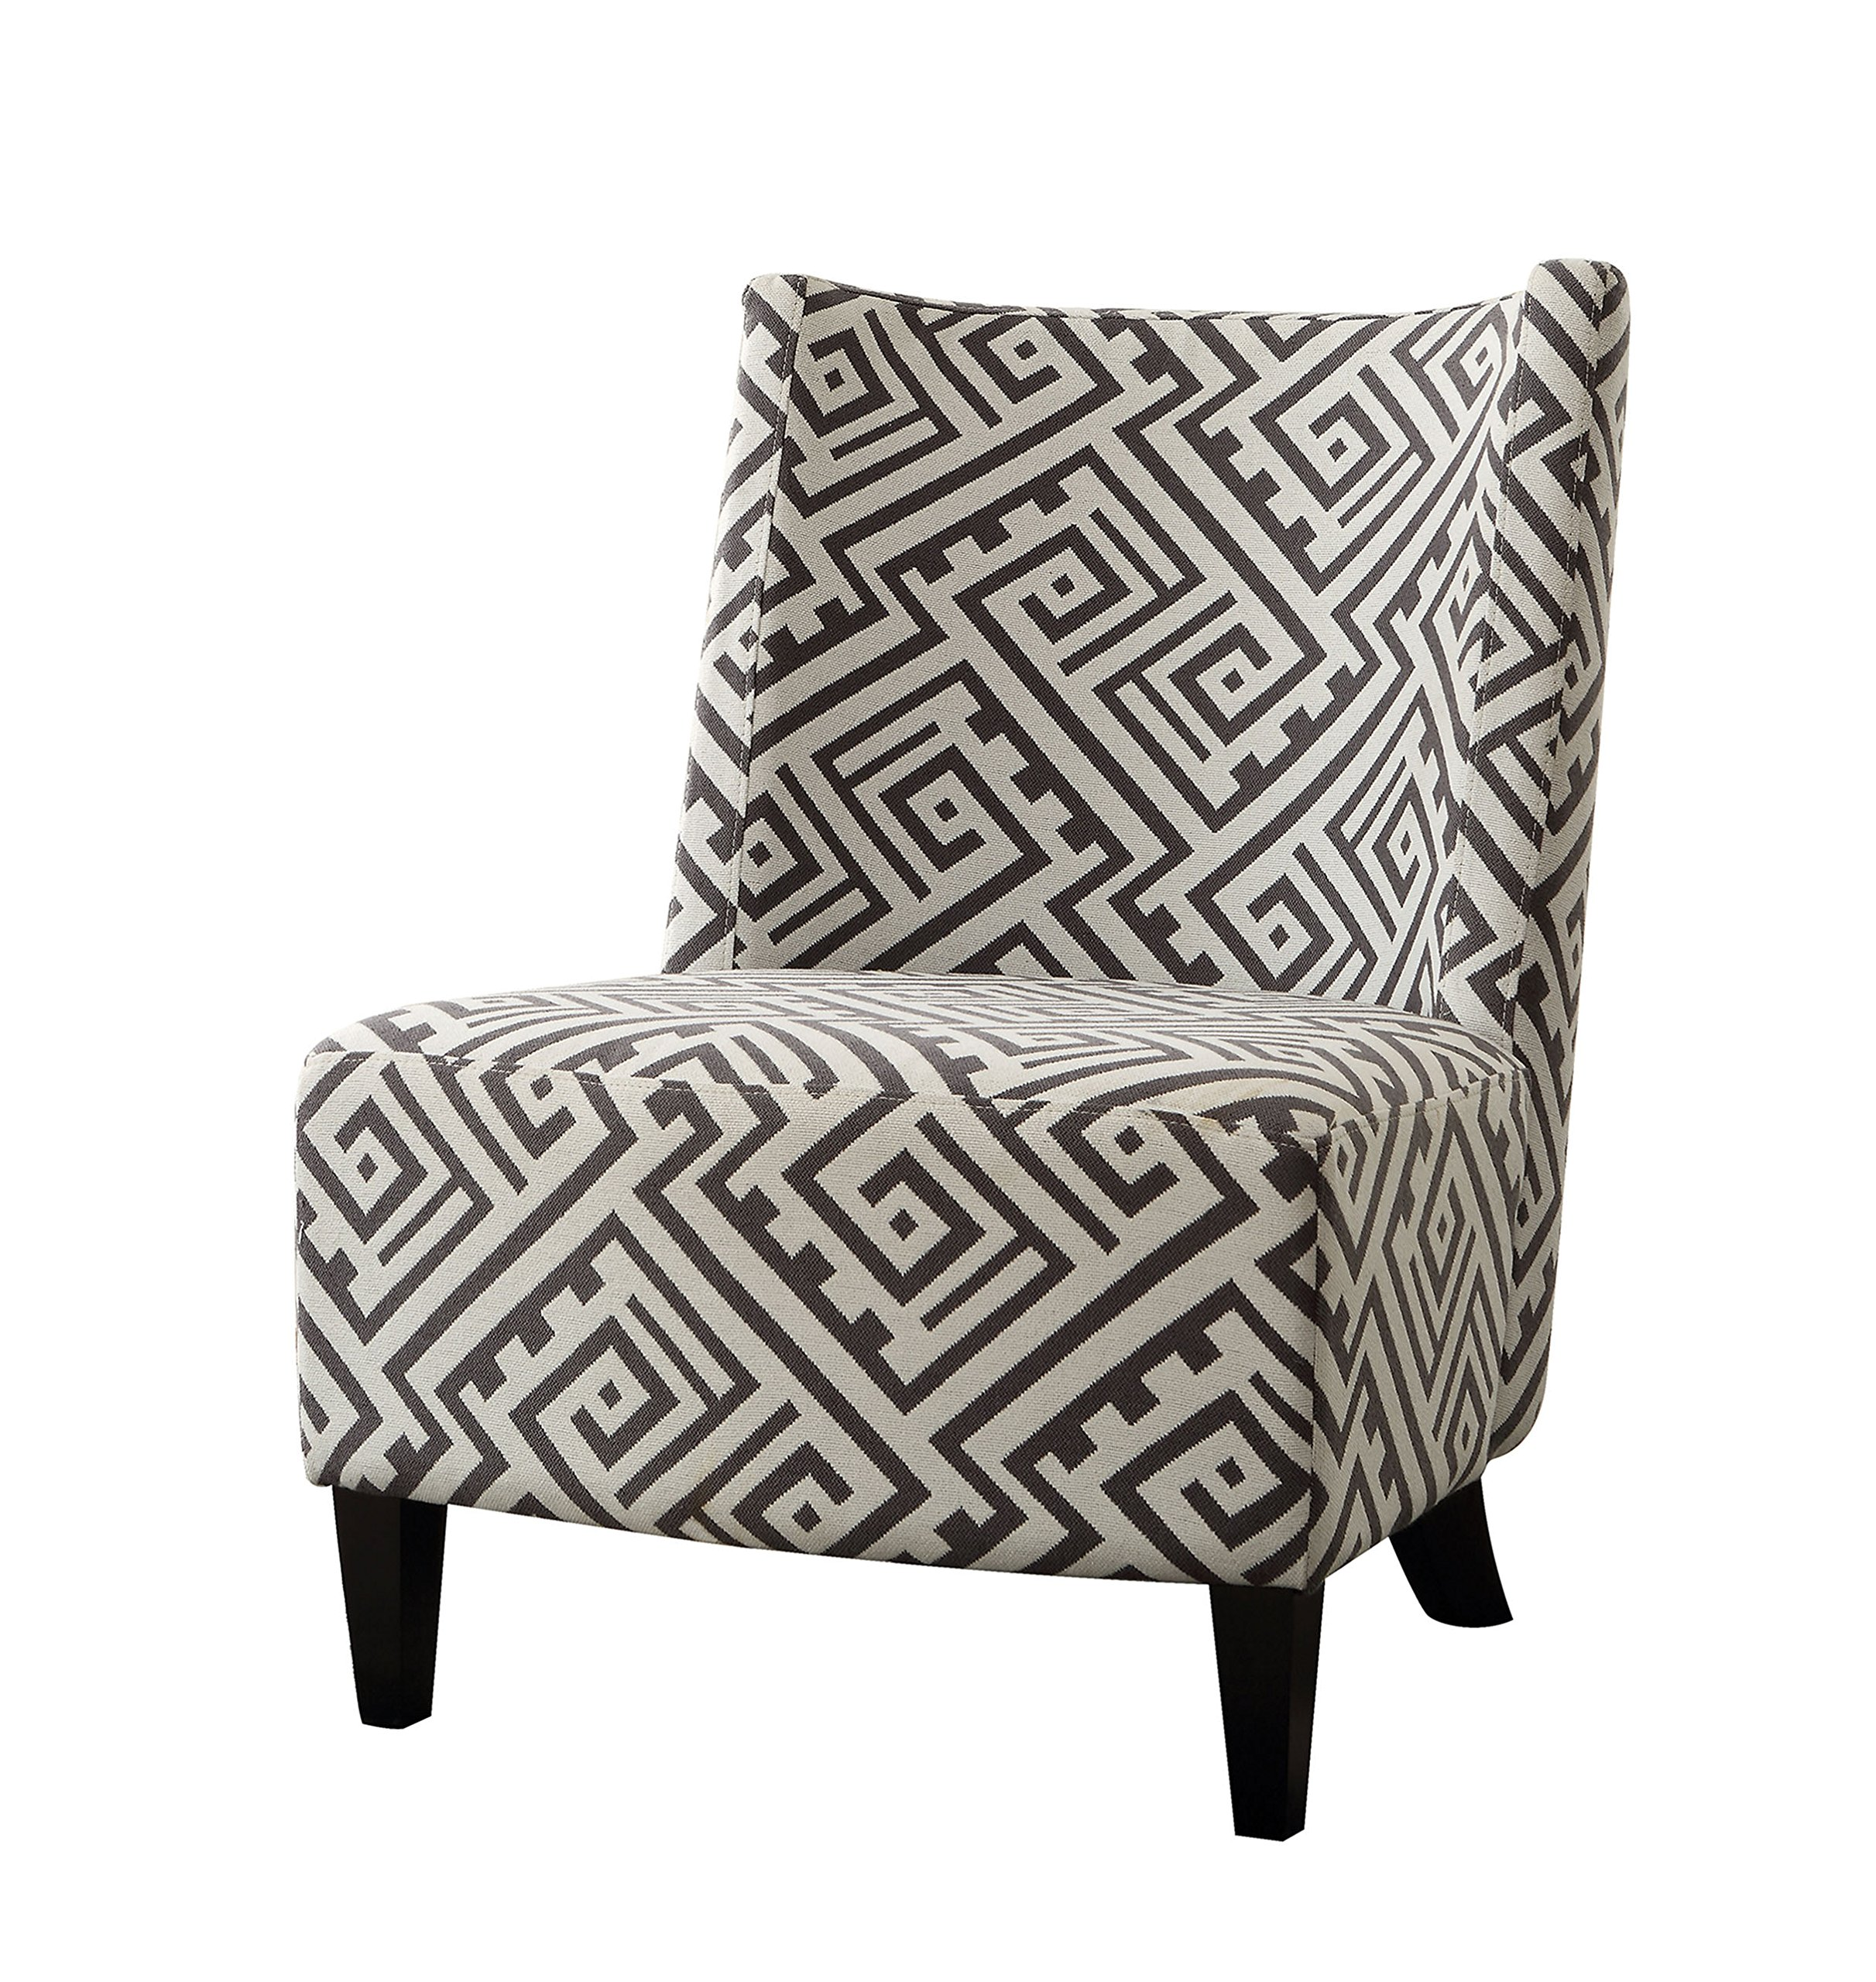 HOMES: Inside + Out IDF-AC6125 Robbin Accent Living Room Chair, Black/White